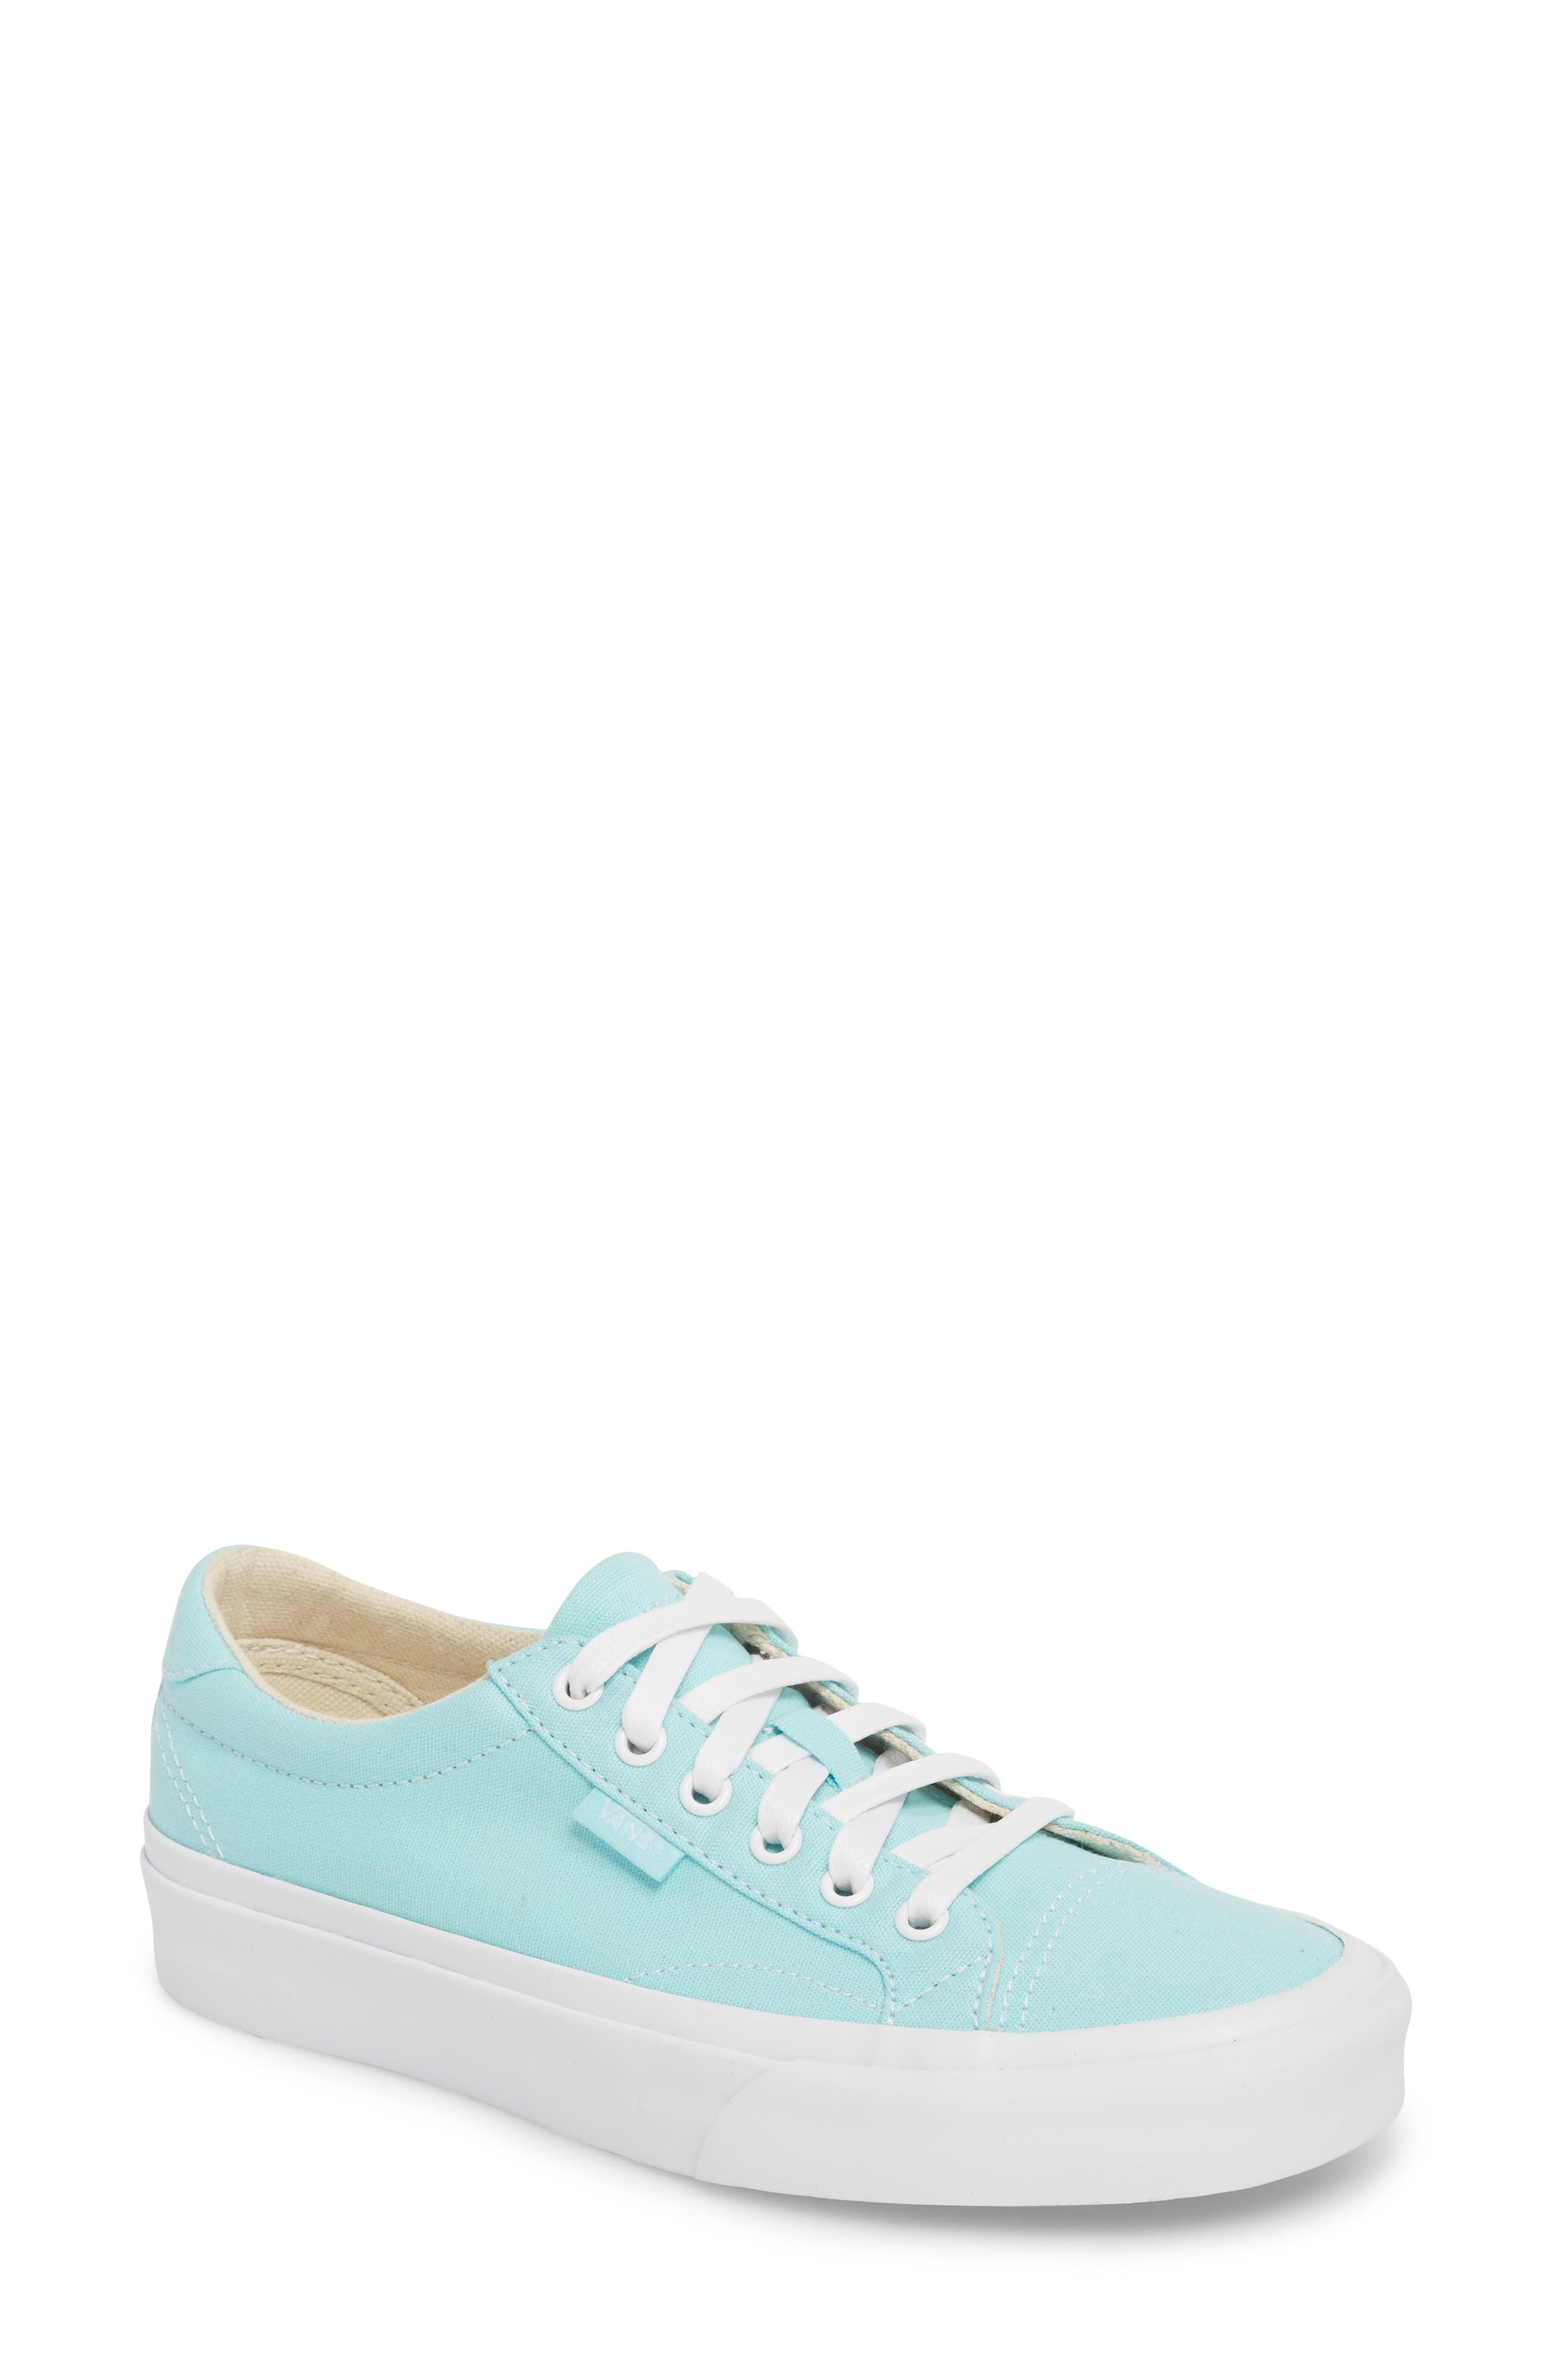 UA Court Low Top Sneaker,                             Main thumbnail 1, color,                             Island Paradise/ True White